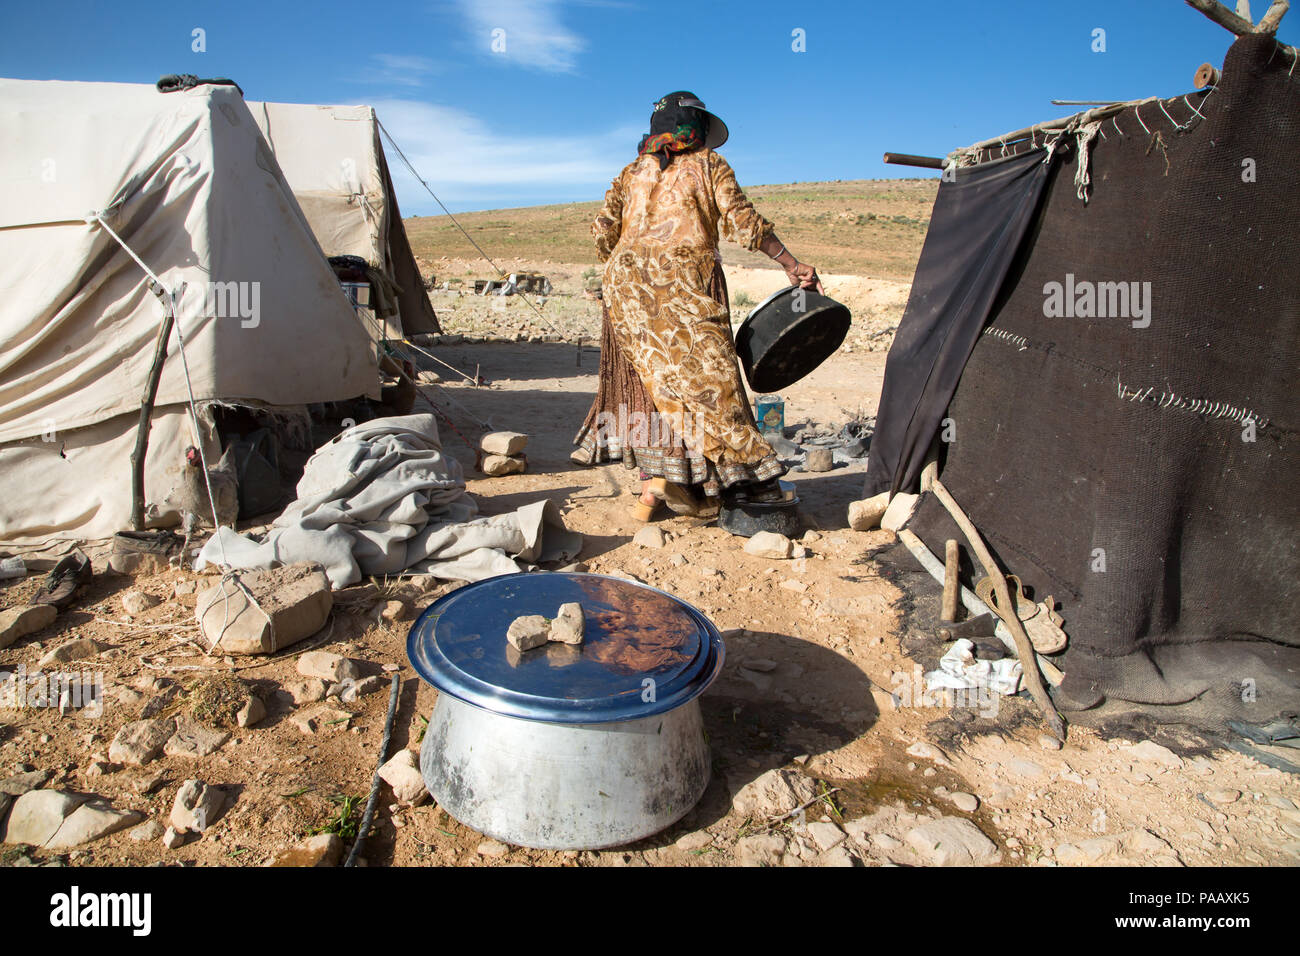 Daily life activities at Qashqai camp, nomad people, Iran - Stock Image